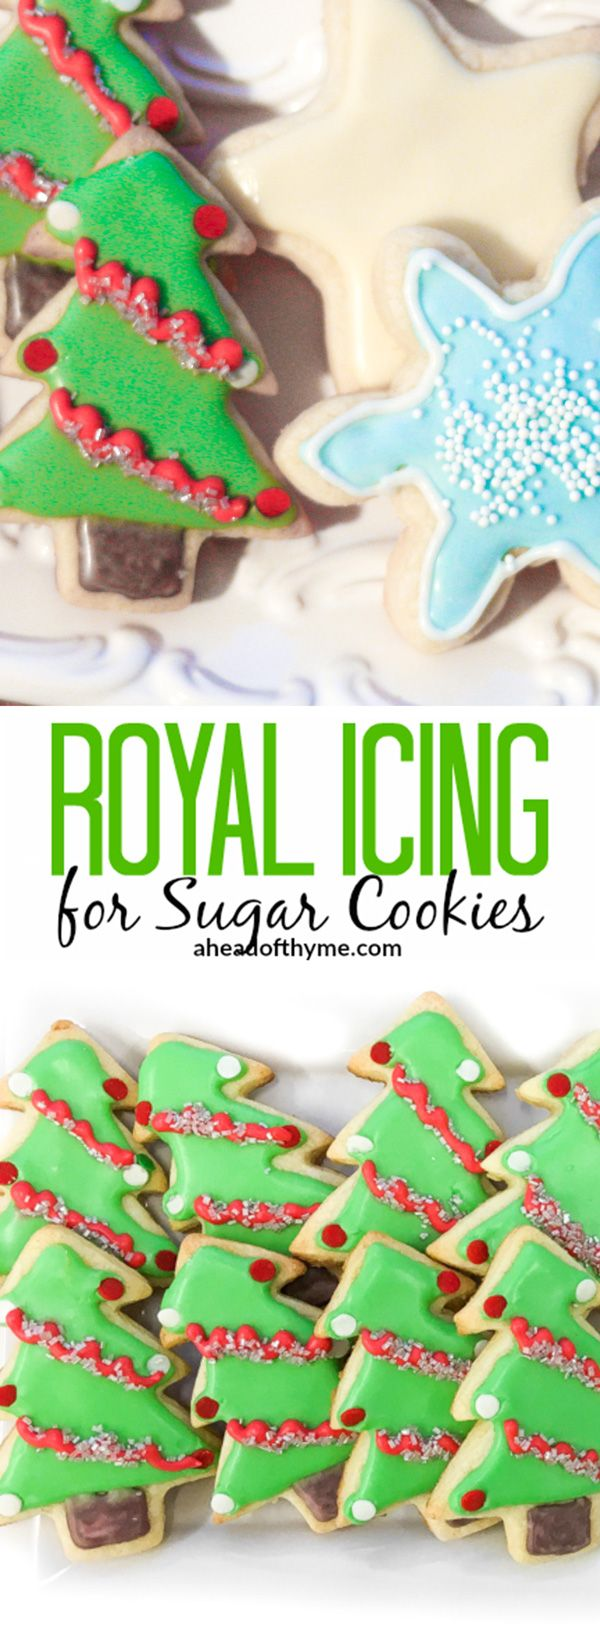 Royal Icing for Sugar Cookies: It's that time of year again and one of my favourite holiday traditions is baking and decorating sugar cookies with royal icing | aheadofthyme.com via @aheadofthyme